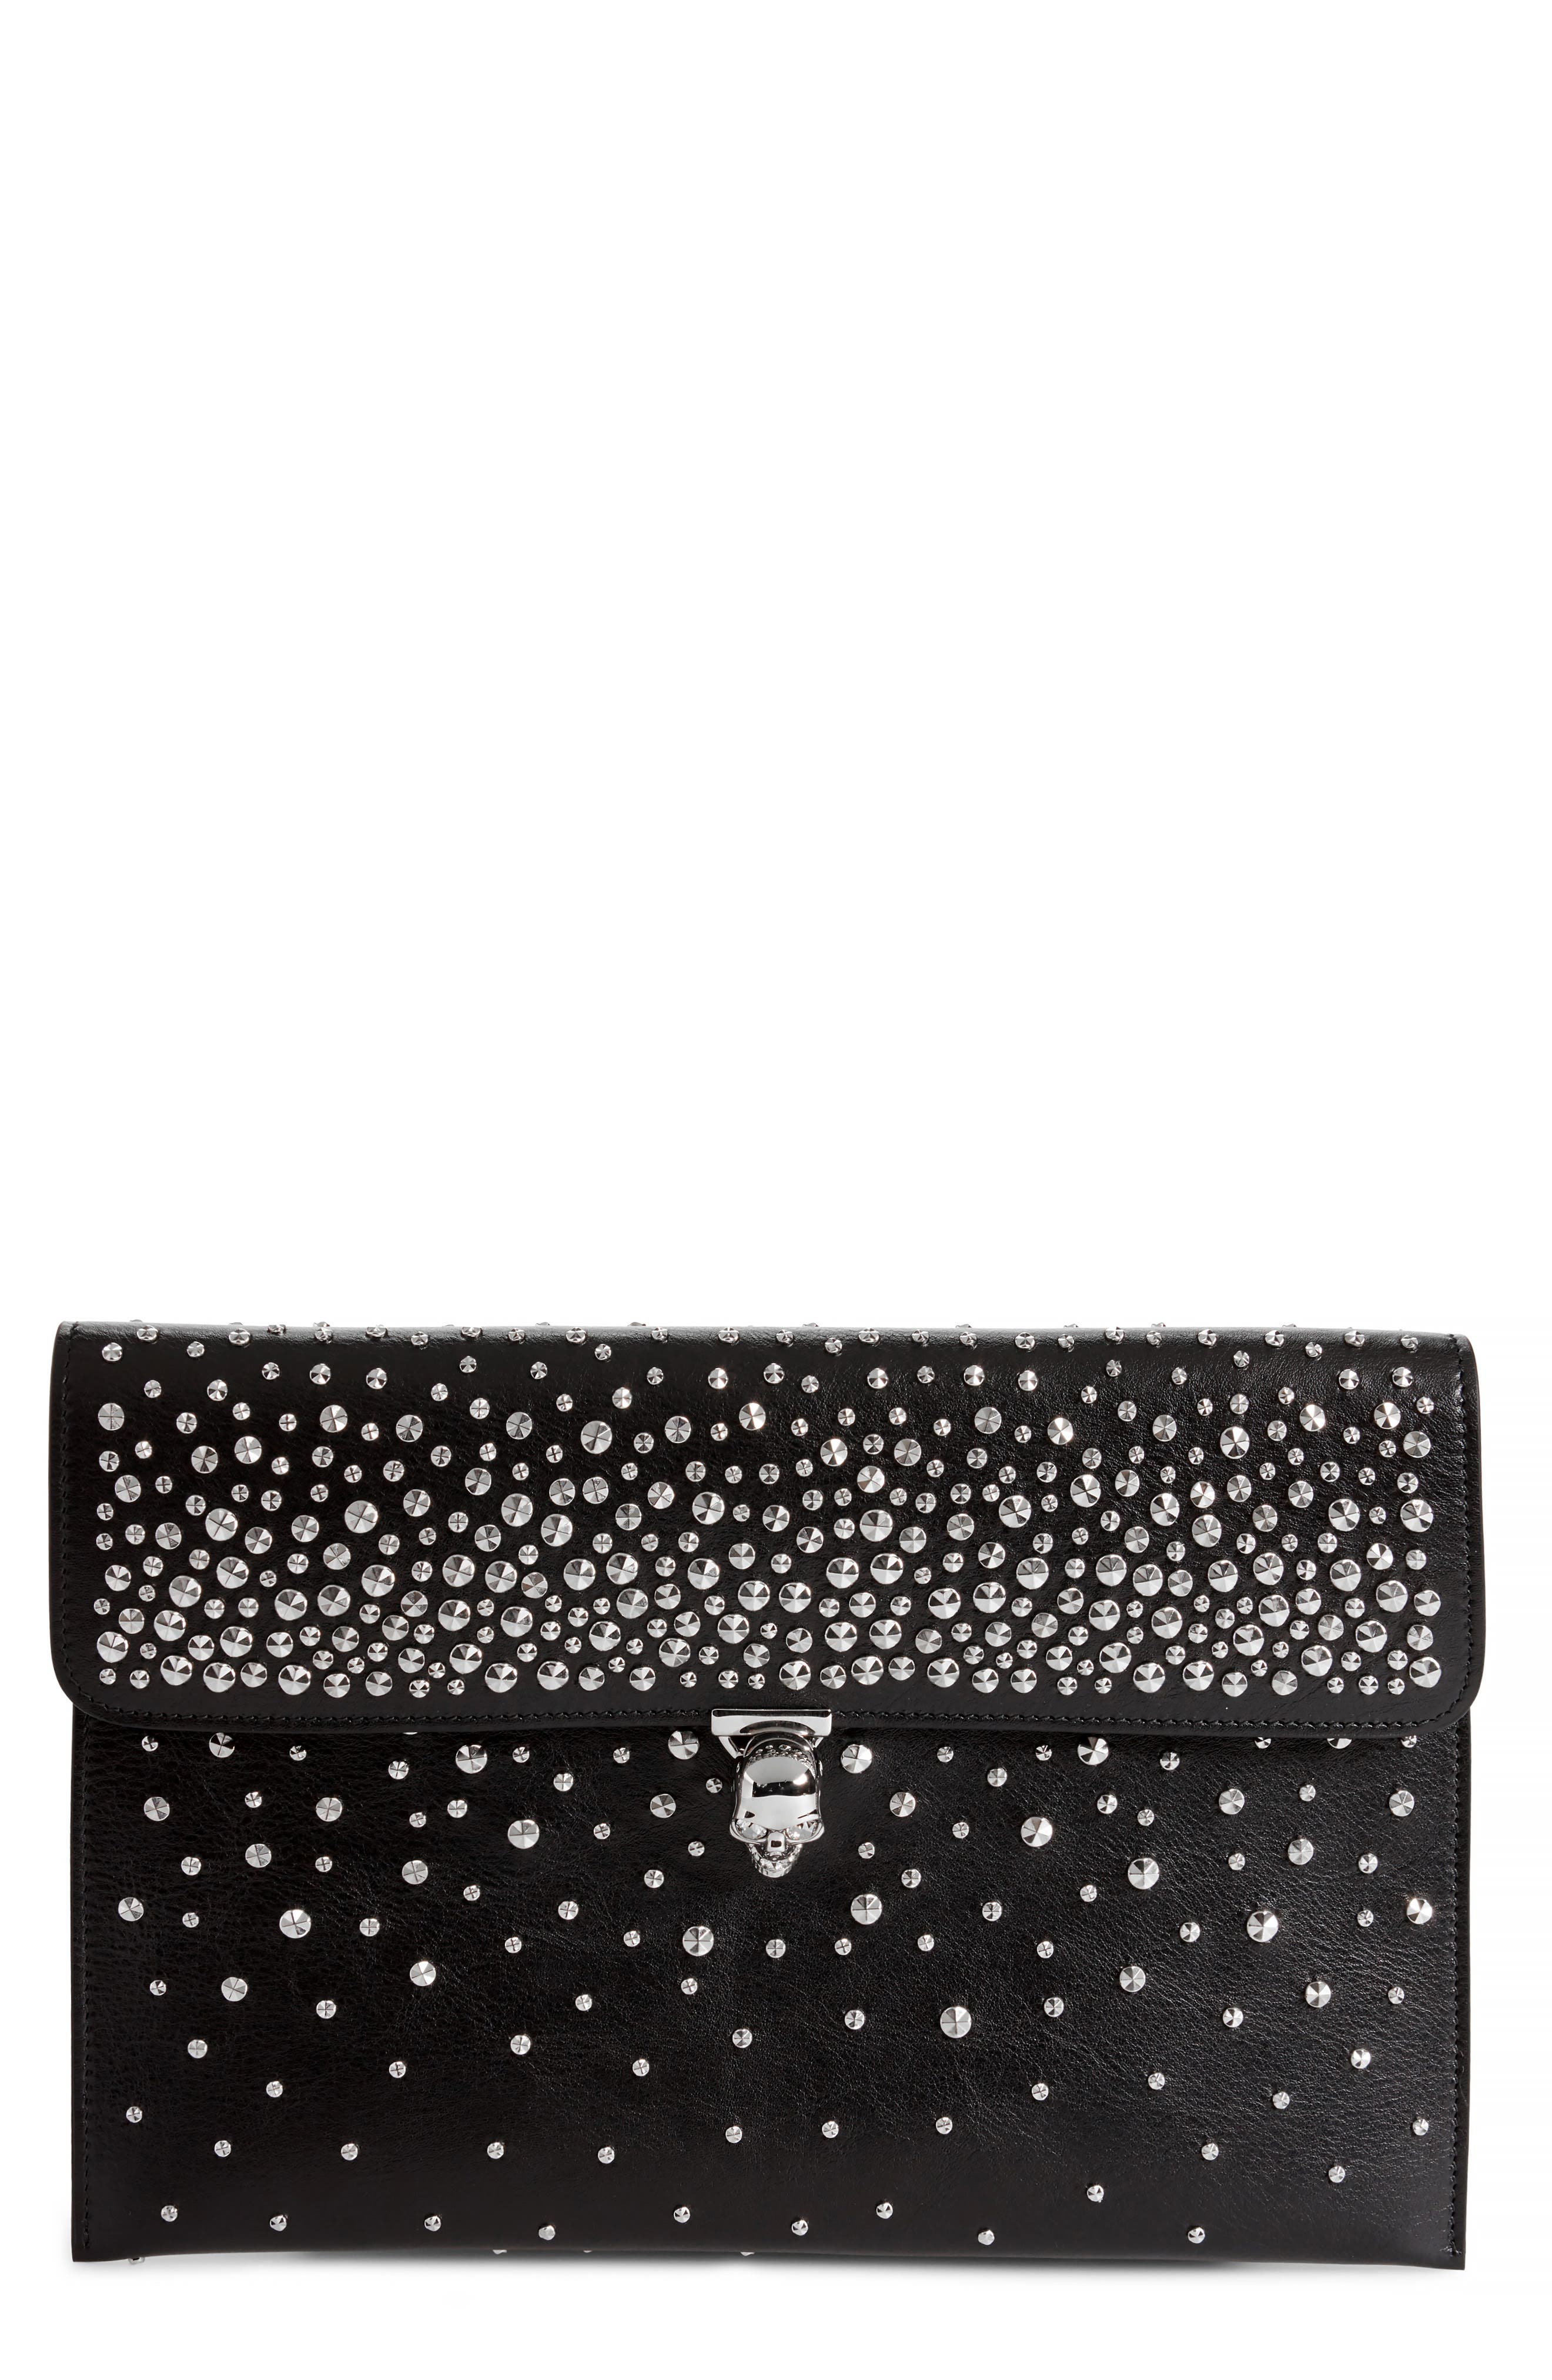 Studded Skull Closure Leather Envelope Clutch,                             Main thumbnail 1, color,                             Black